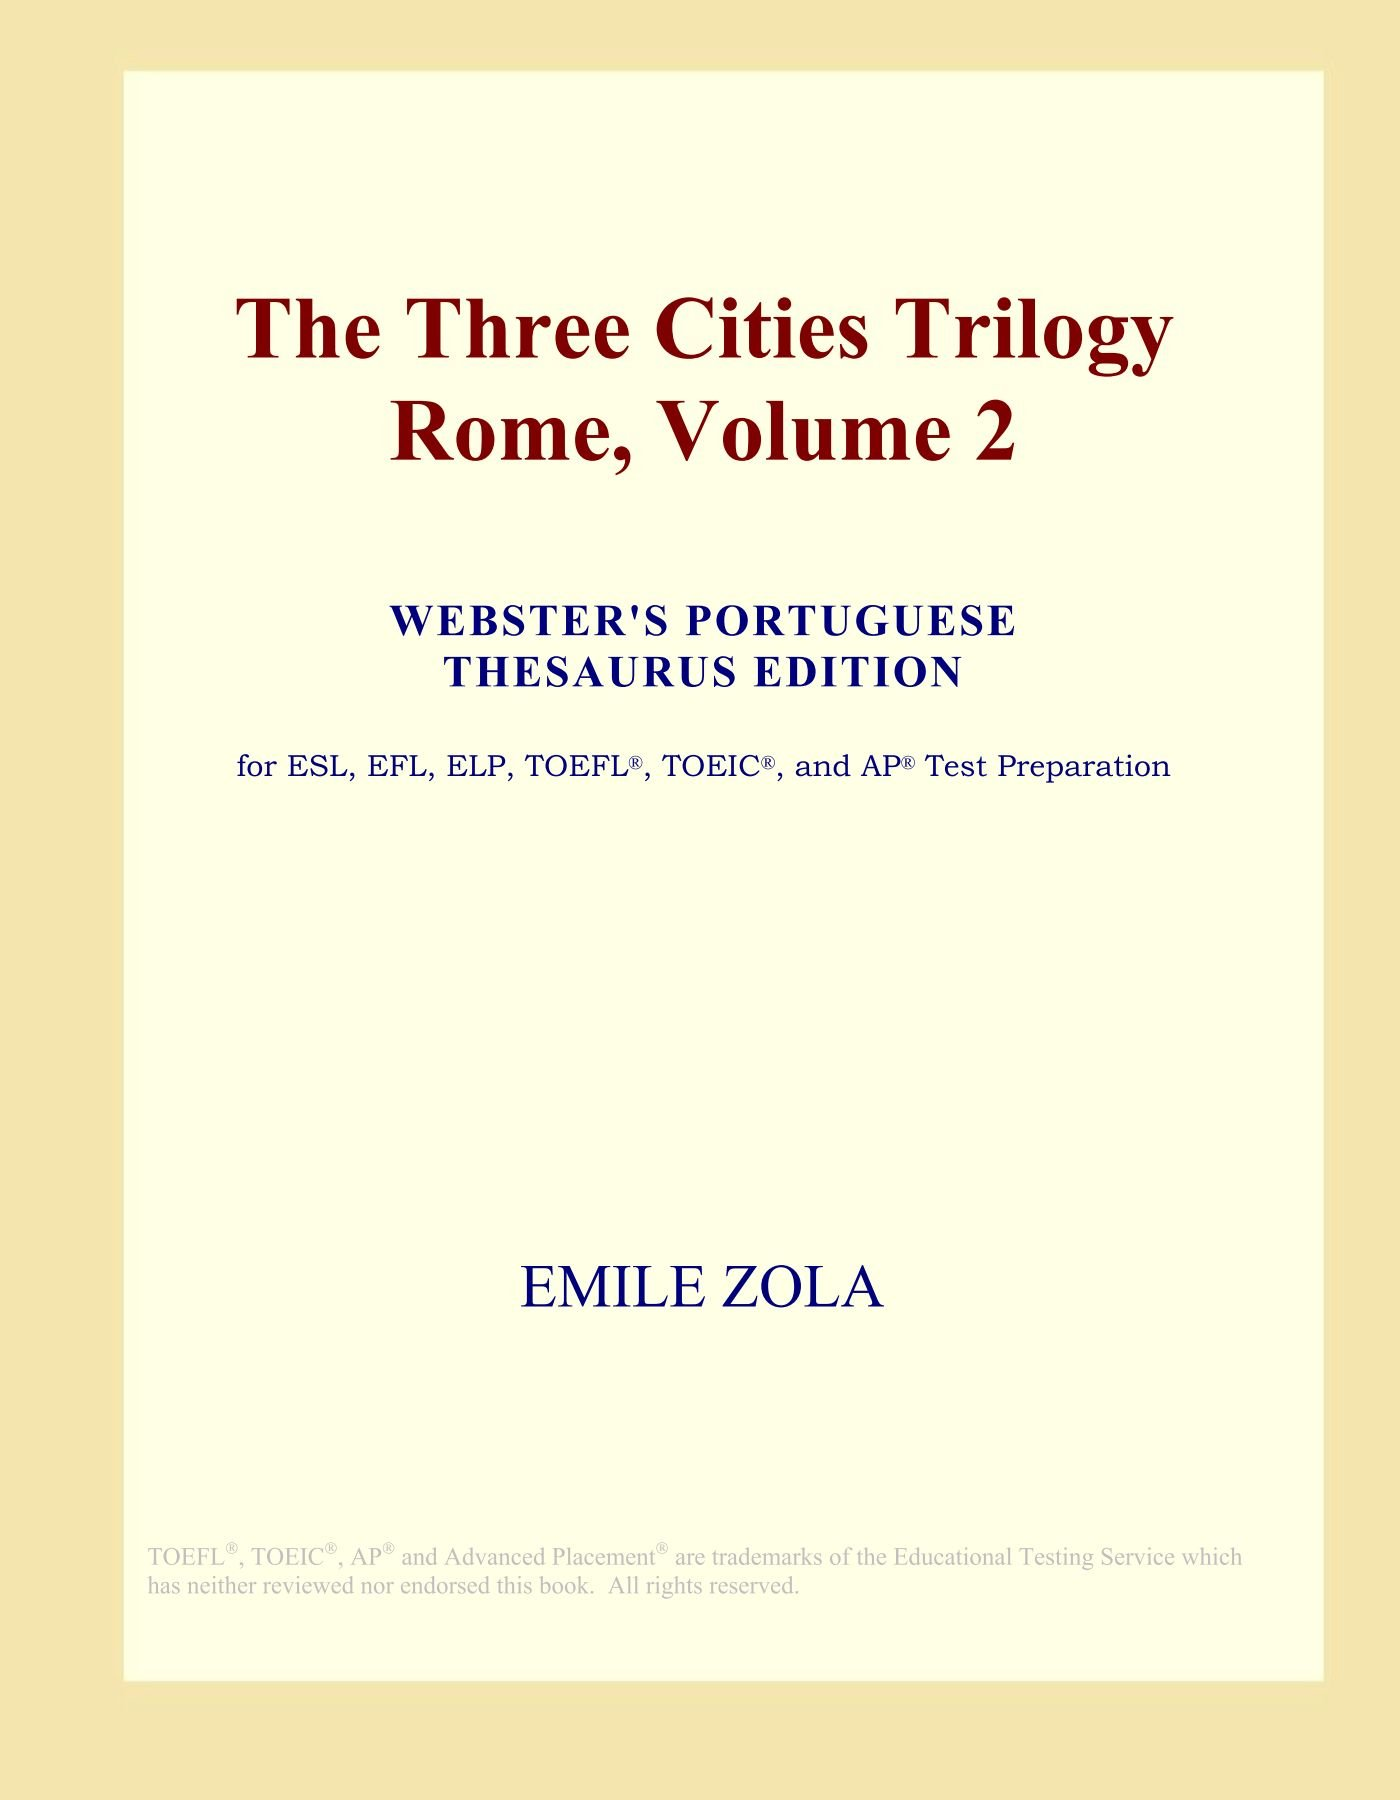 The Three Cities Trilogy Rome, Volume 2 (Webster's Portuguese Thesaurus Edition) pdf epub